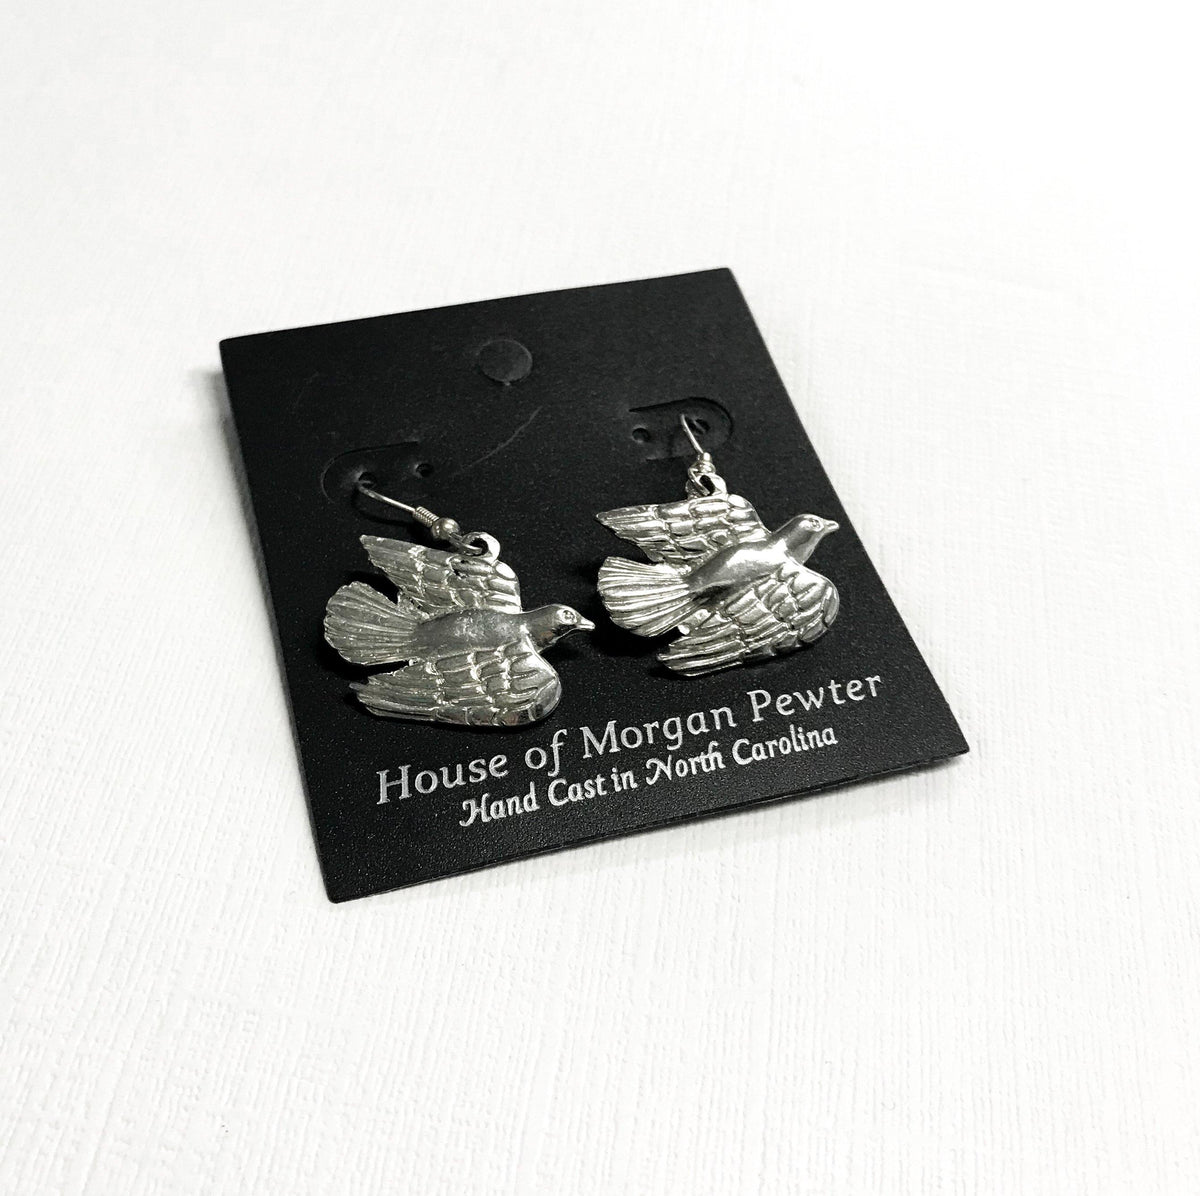 Handmade Pewter Dove Jewelry- Earrings, Necklace, Gift Set - House of Morgan Pewter